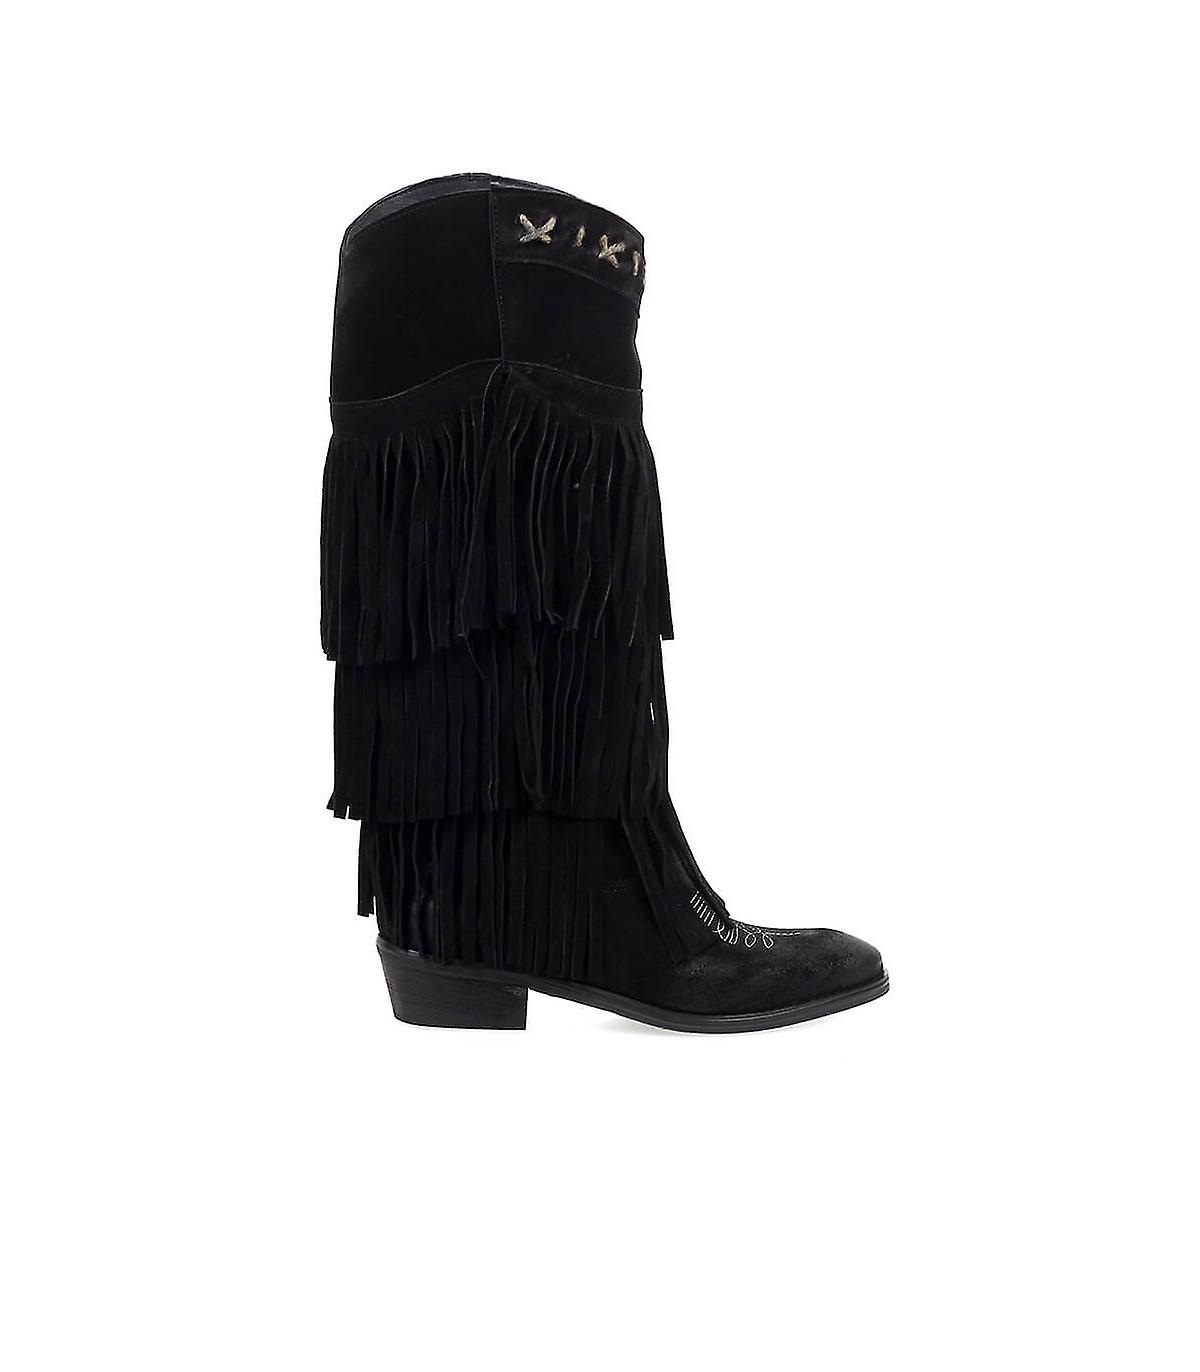 ZOE BLACK SUÈDE BOOT WITH FRINGES F1WxH